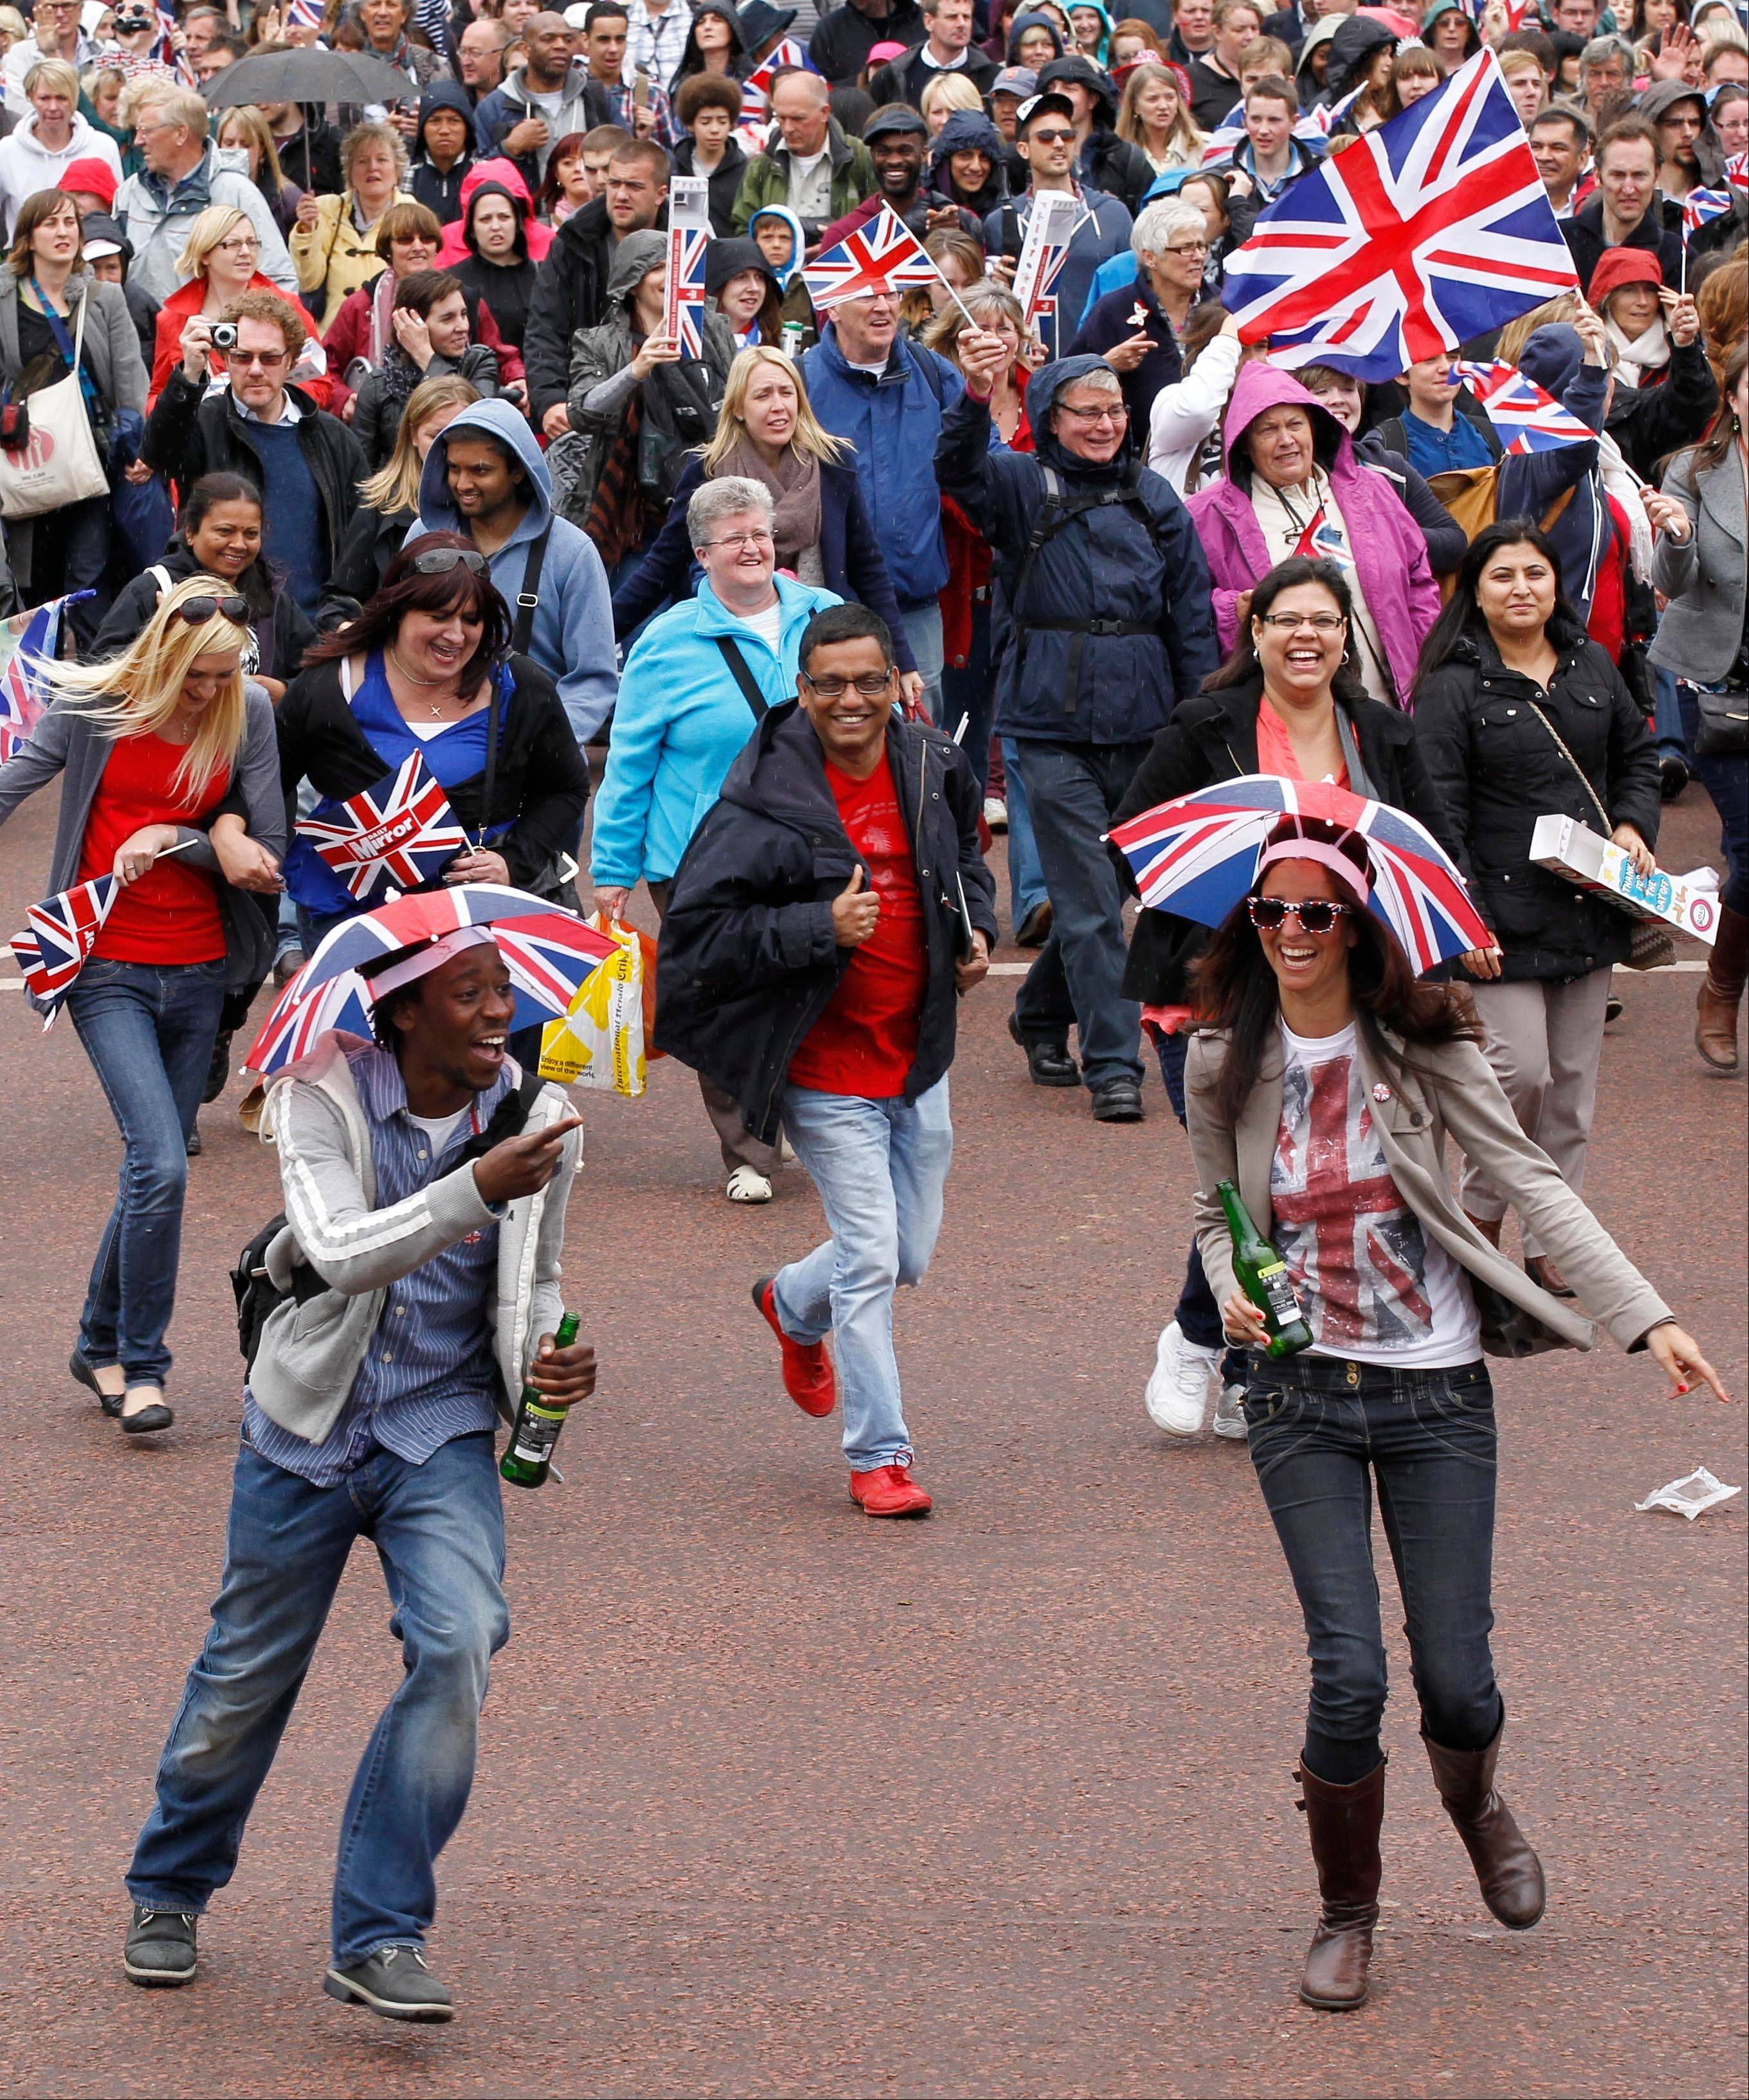 Two revelers among thousands rush up the Mall to the gate of Buckingham Palace in London to watch Britain Queen Elizabeth II appear on the palace balcony as part of a four-day Diamond Jubilee celebration to mark the 60th anniversary of Queen Elizabeth II accession to the throne, Tuesday, June 5, 2012.